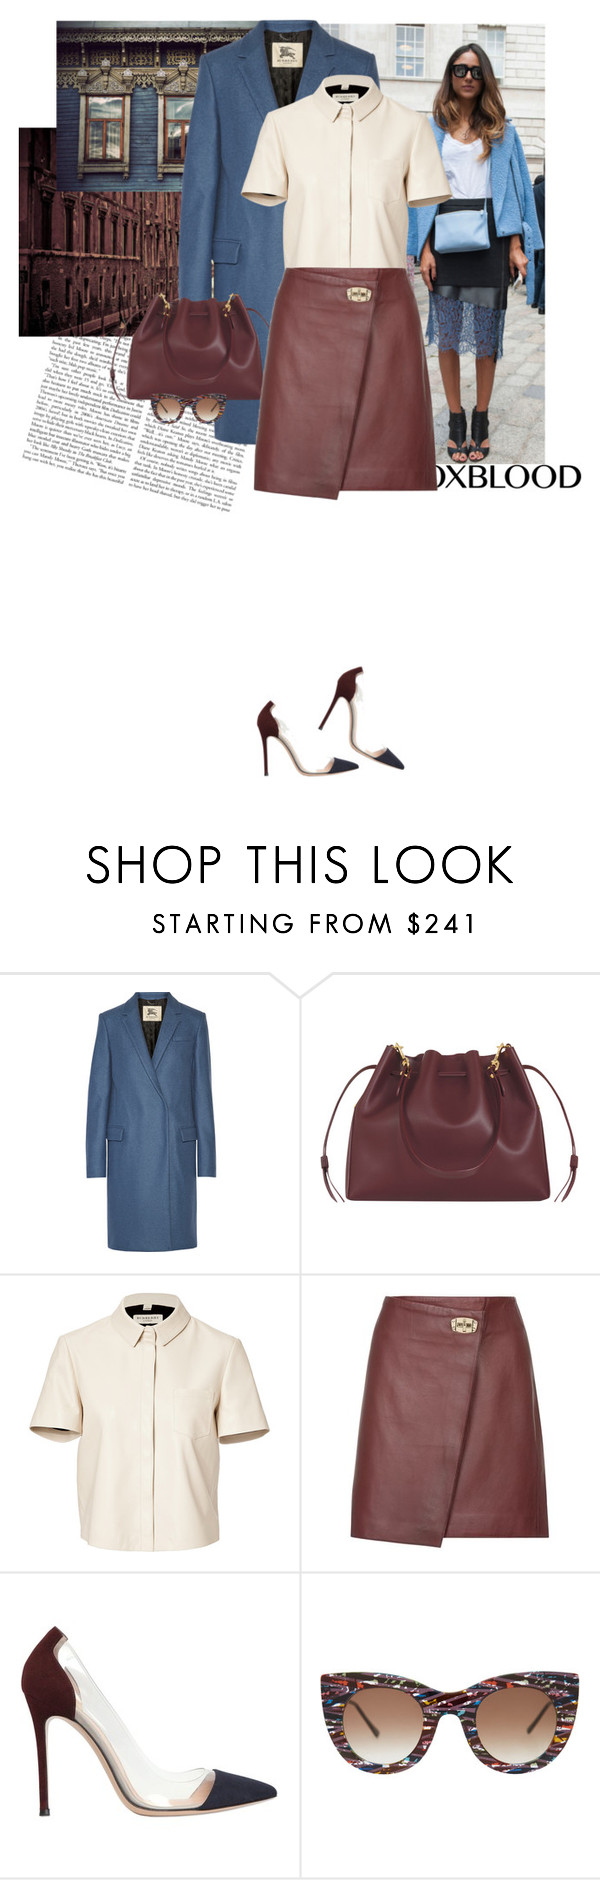 """""""""""Society often forgives the criminal; it never forgives the dreamer."""" - Oscar Wilde"""" by hil4ry ❤ liked on Polyvore featuring Burberry, Sophie Hulme, Reiss, Gianvito Rossi and Thierry Lasry"""